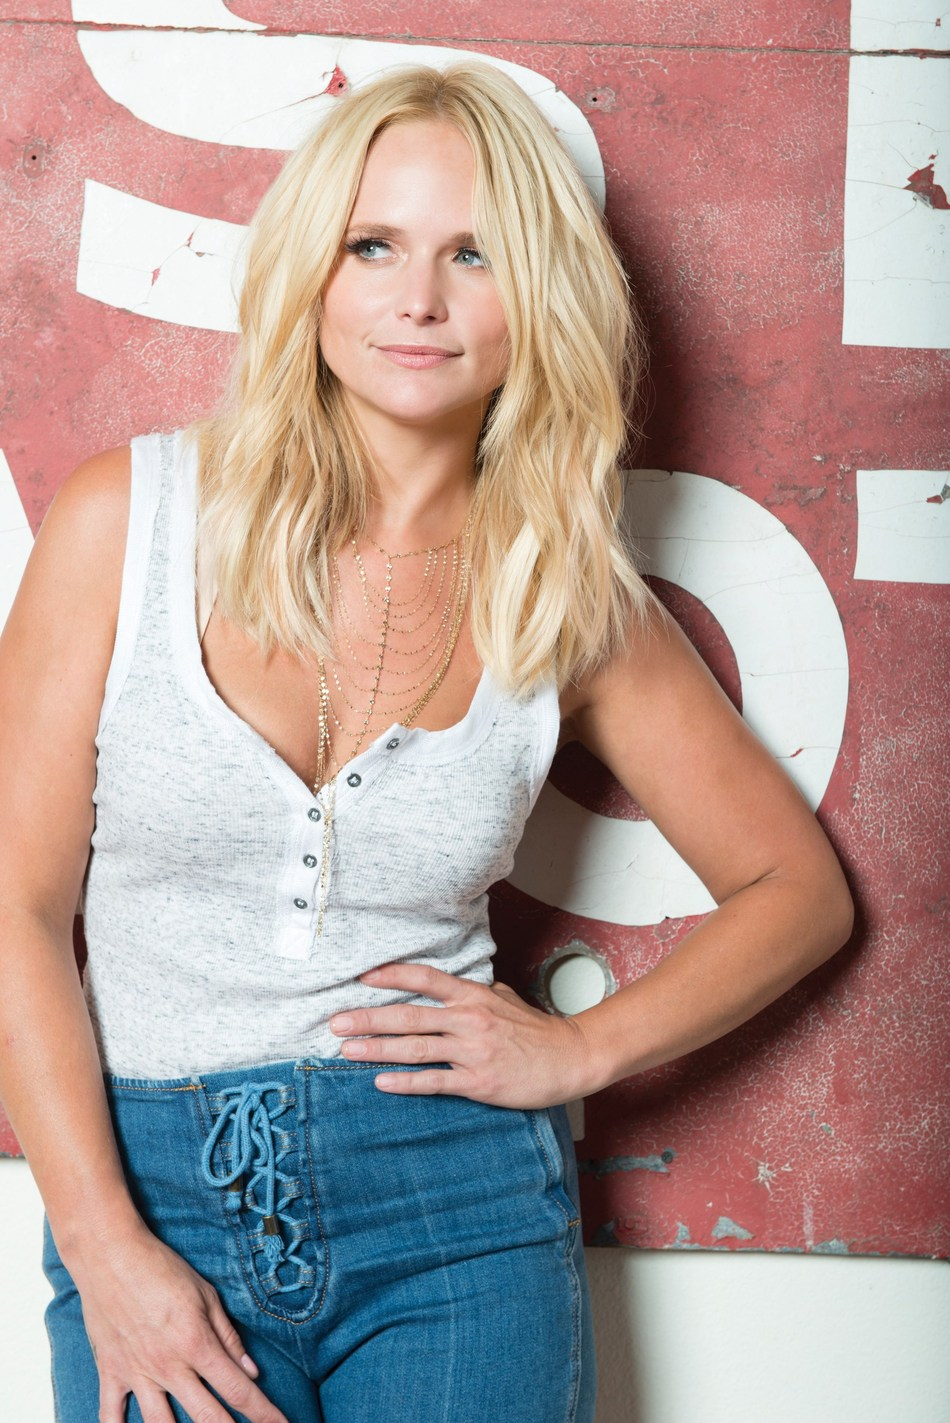 Mack, Jack & McConaughey Announces Grammy Award-Winner Miranda Lambert to Perform at ACL Live at The Moody Theater